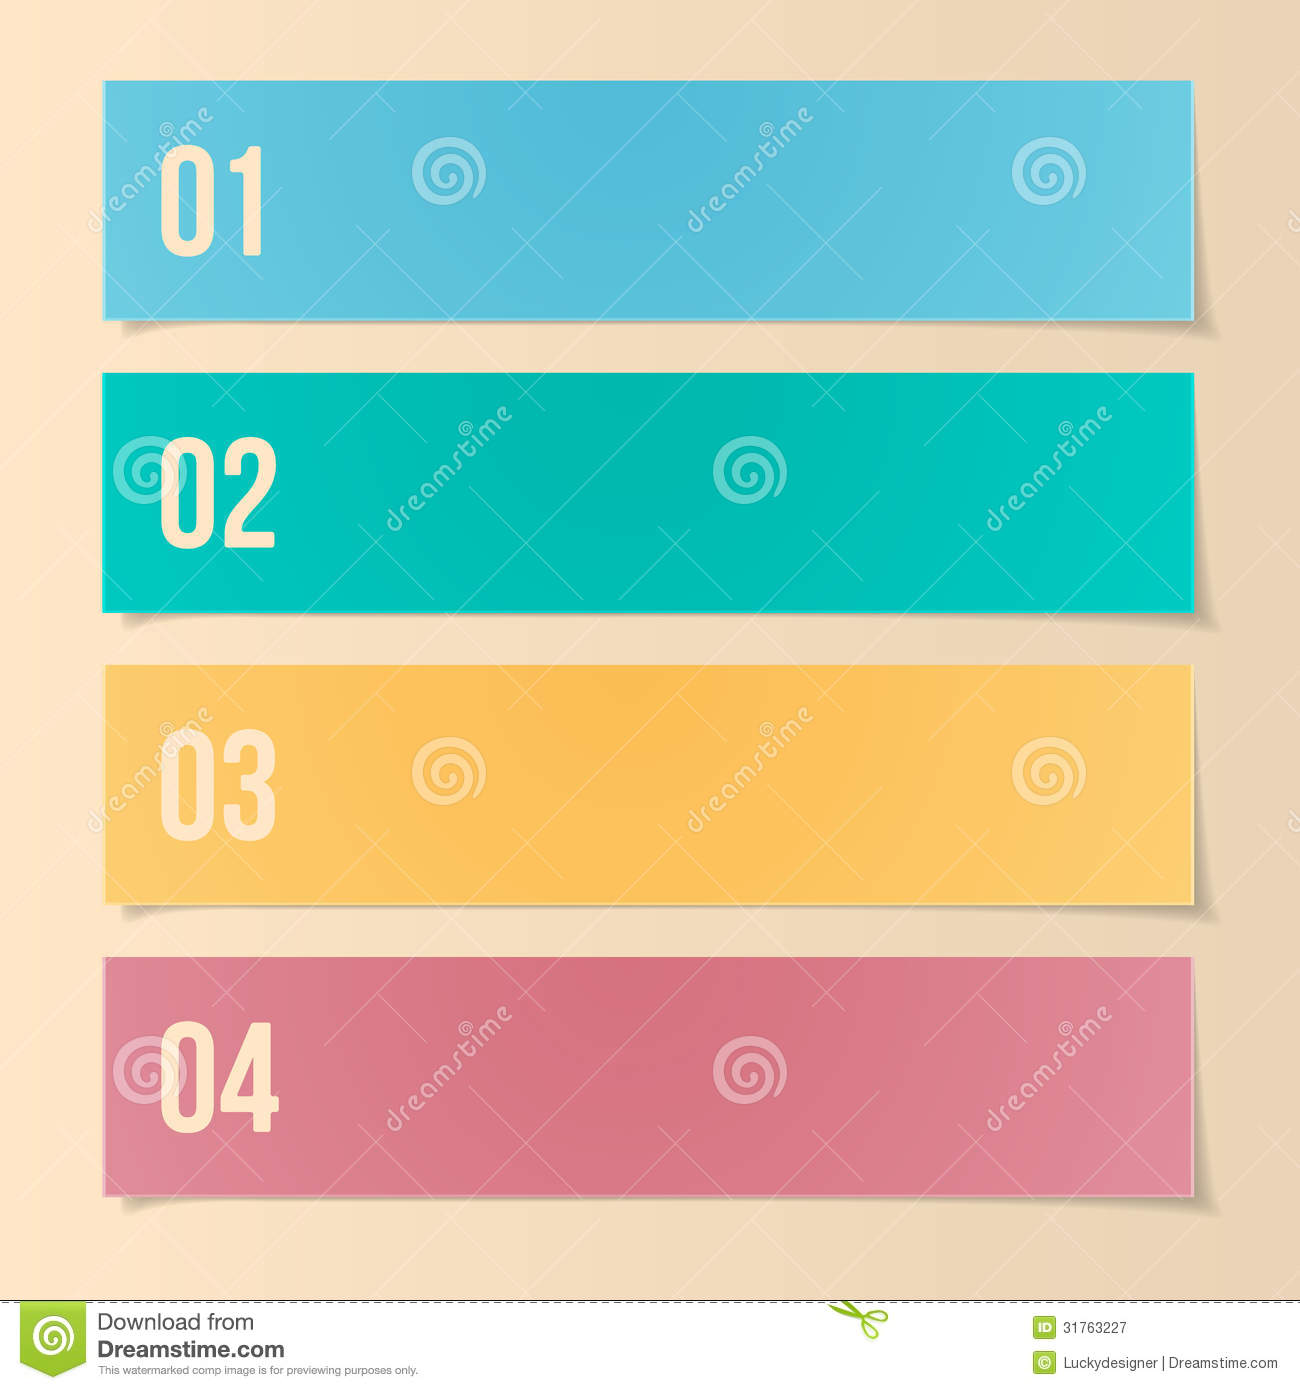 Design banner free download - Royalty Free Stock Photo